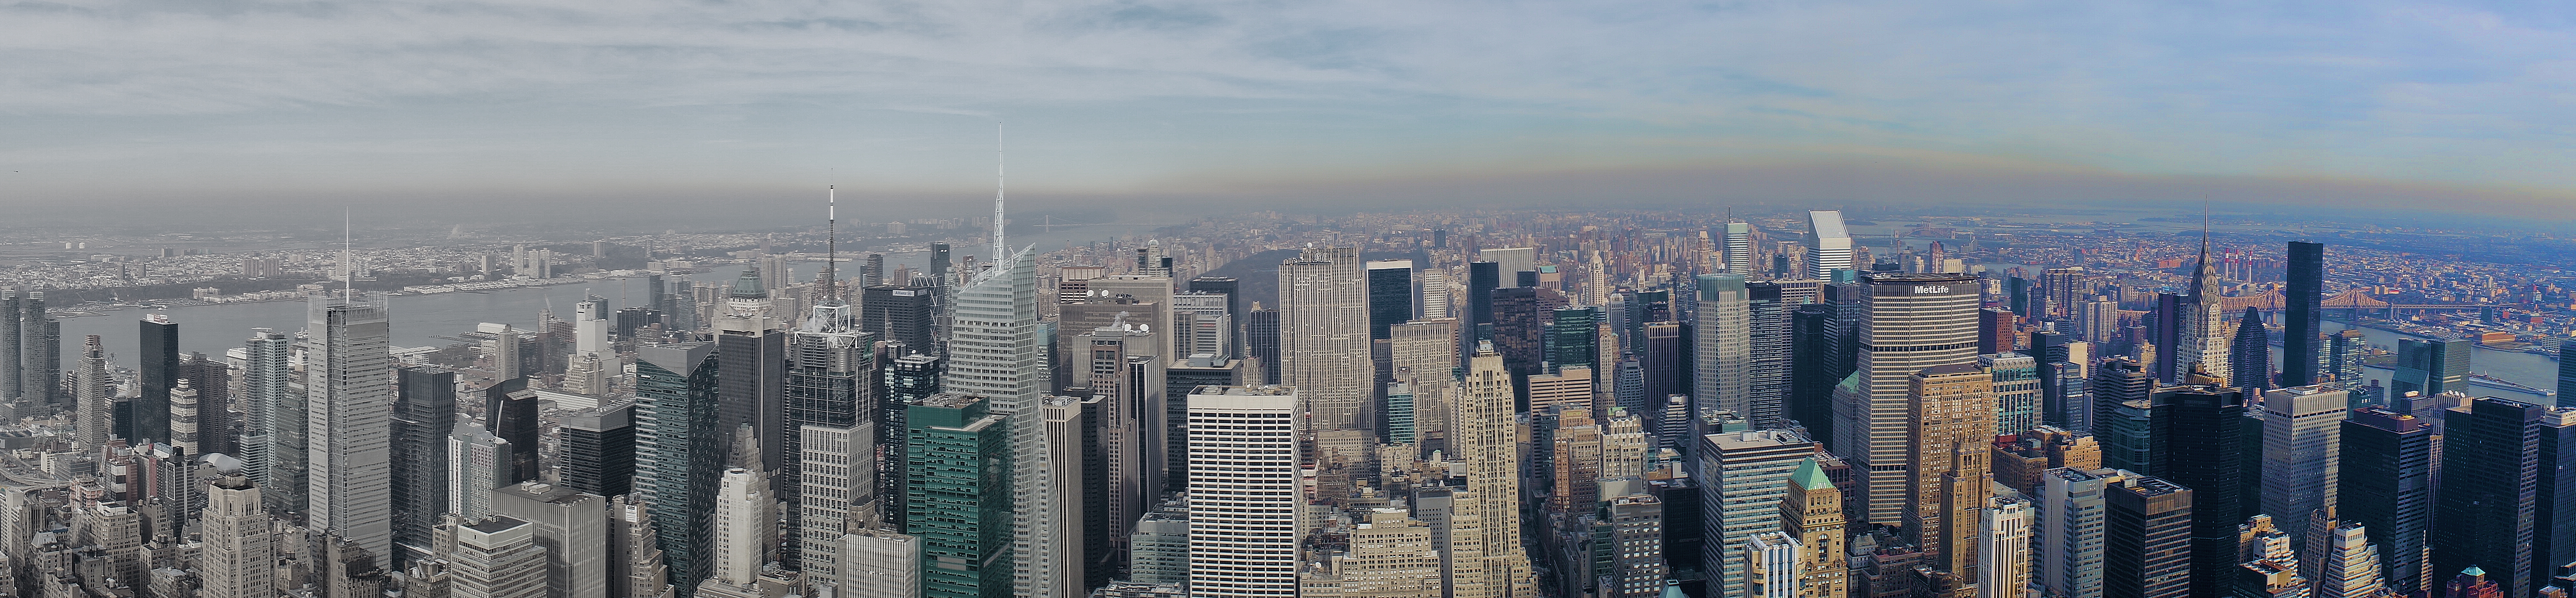 NYC-skyline-x-wide